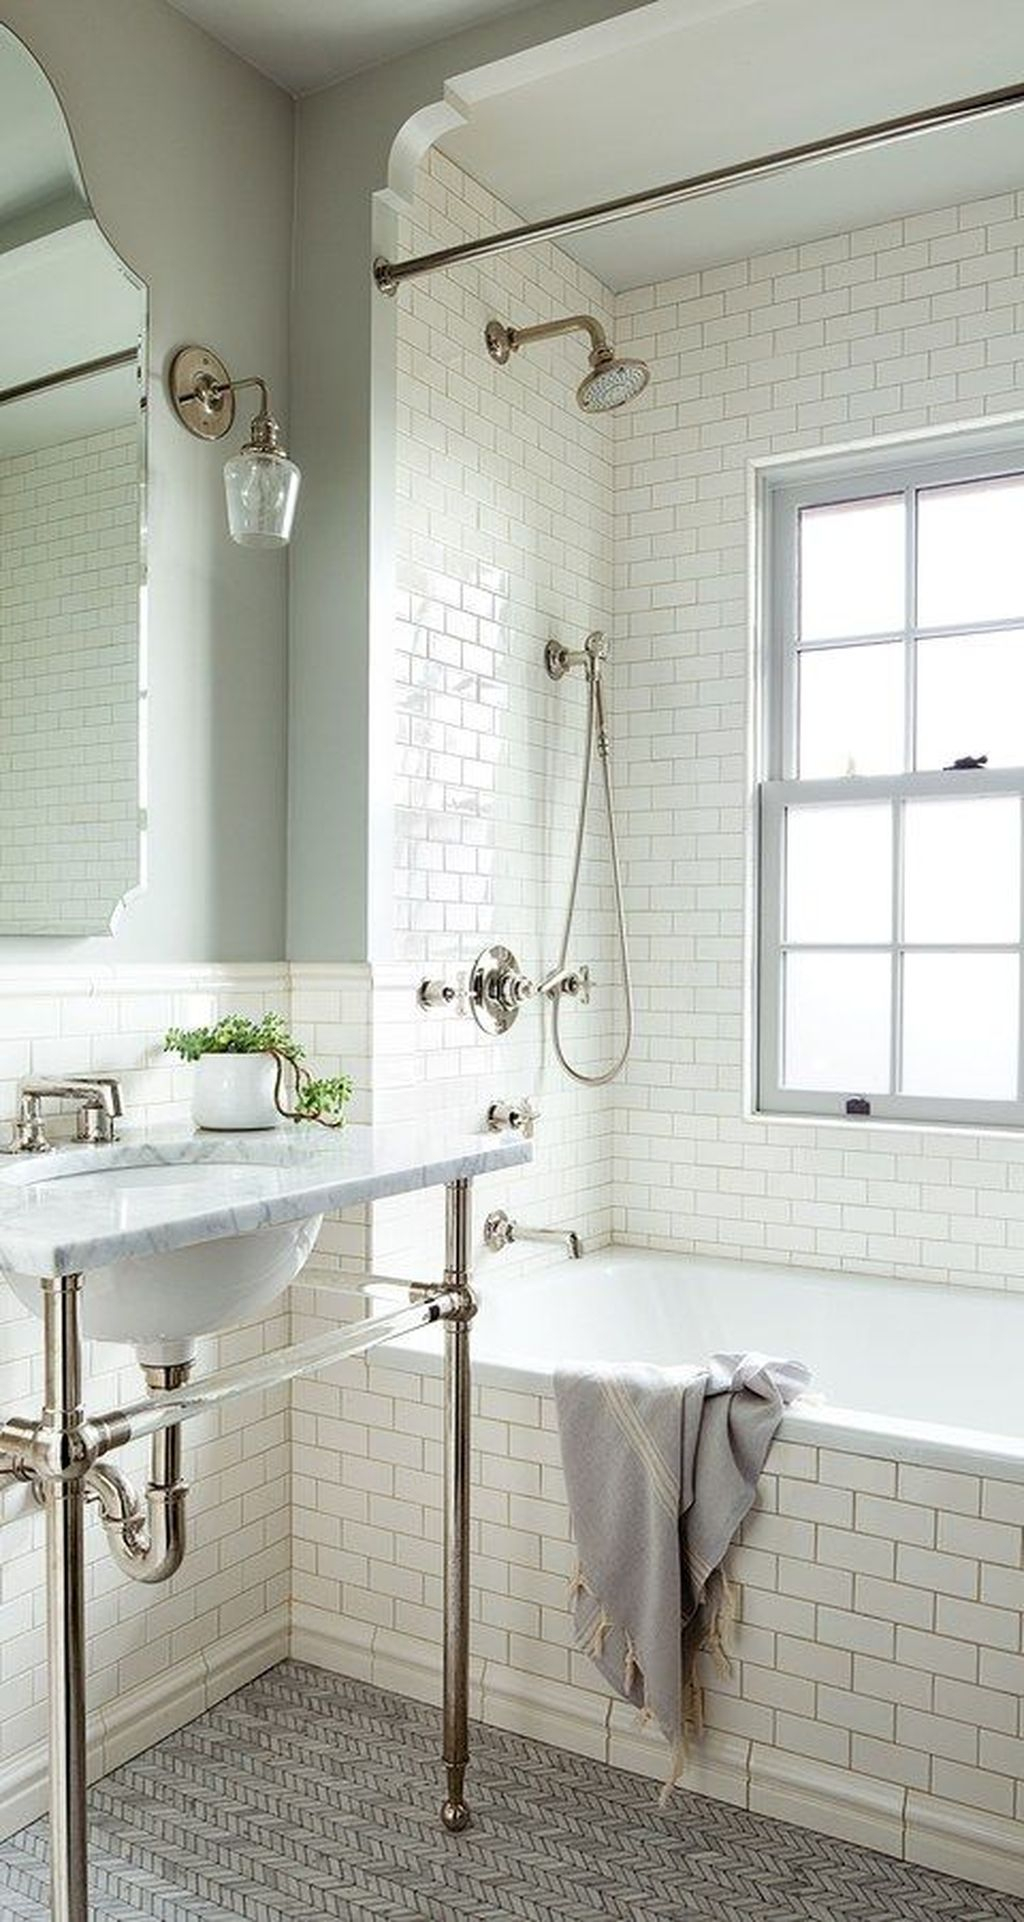 Cute Remodel Shower Design Ideas To Rock This Season 30